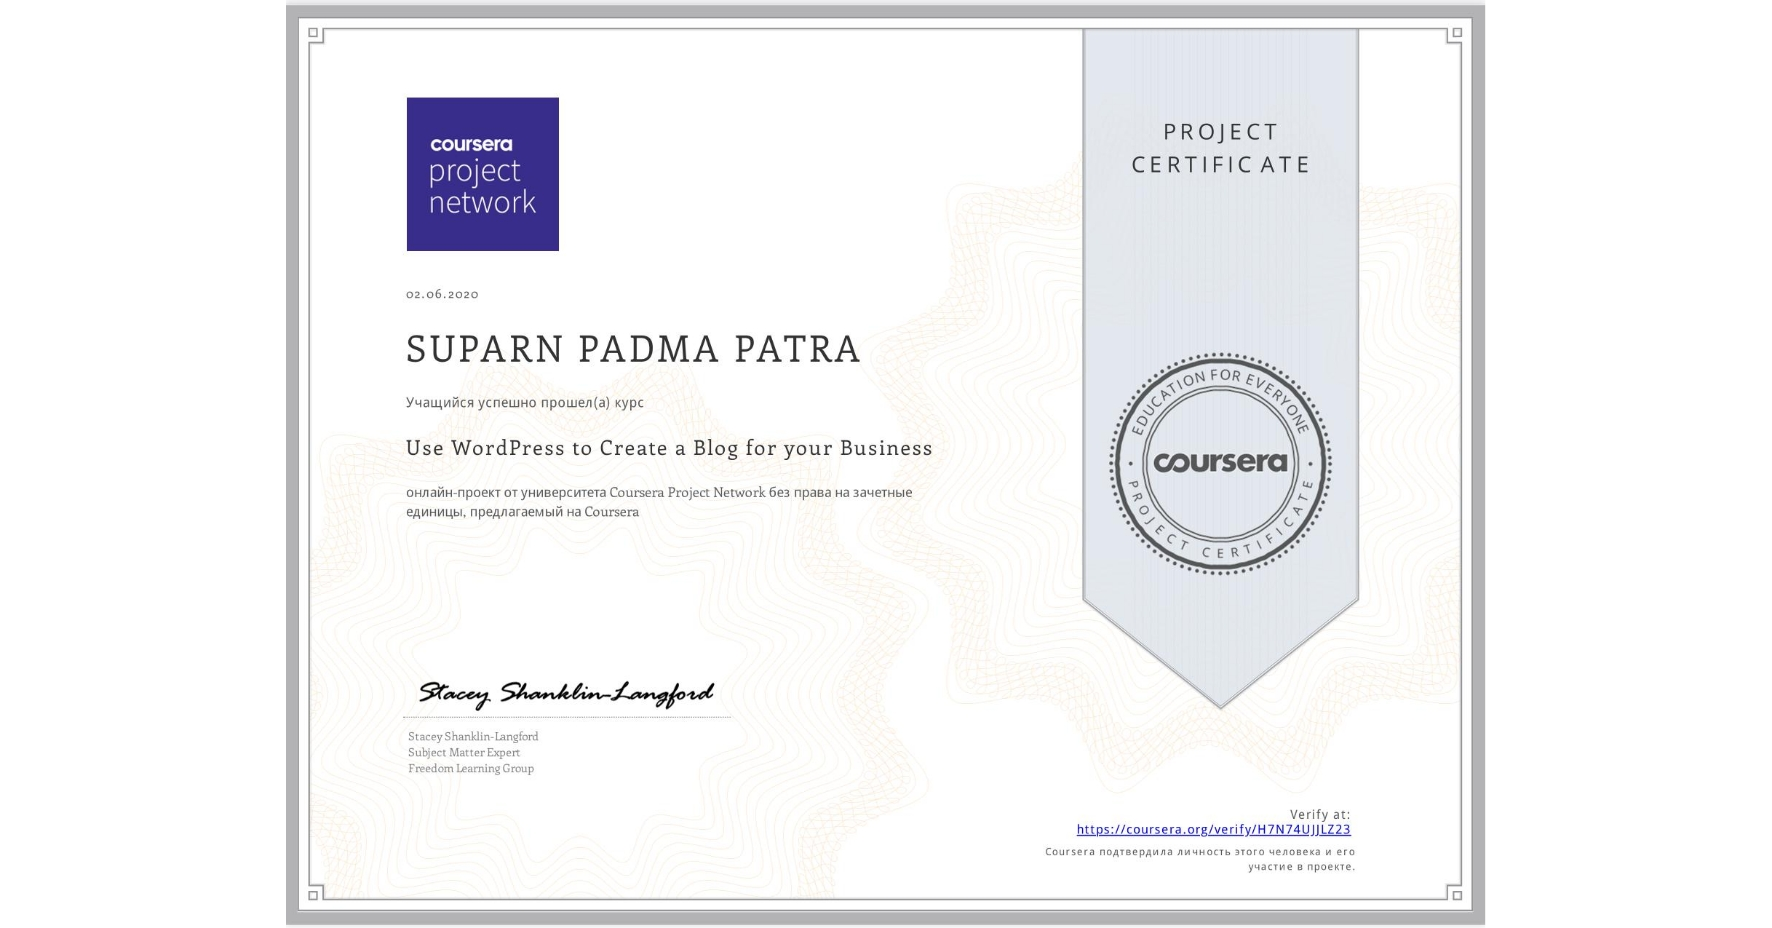 View certificate for SUPARN PADMA  PATRA, Use WordPress to Create a Blog for your Business, an online non-credit course authorized by Coursera Project Network and offered through Coursera